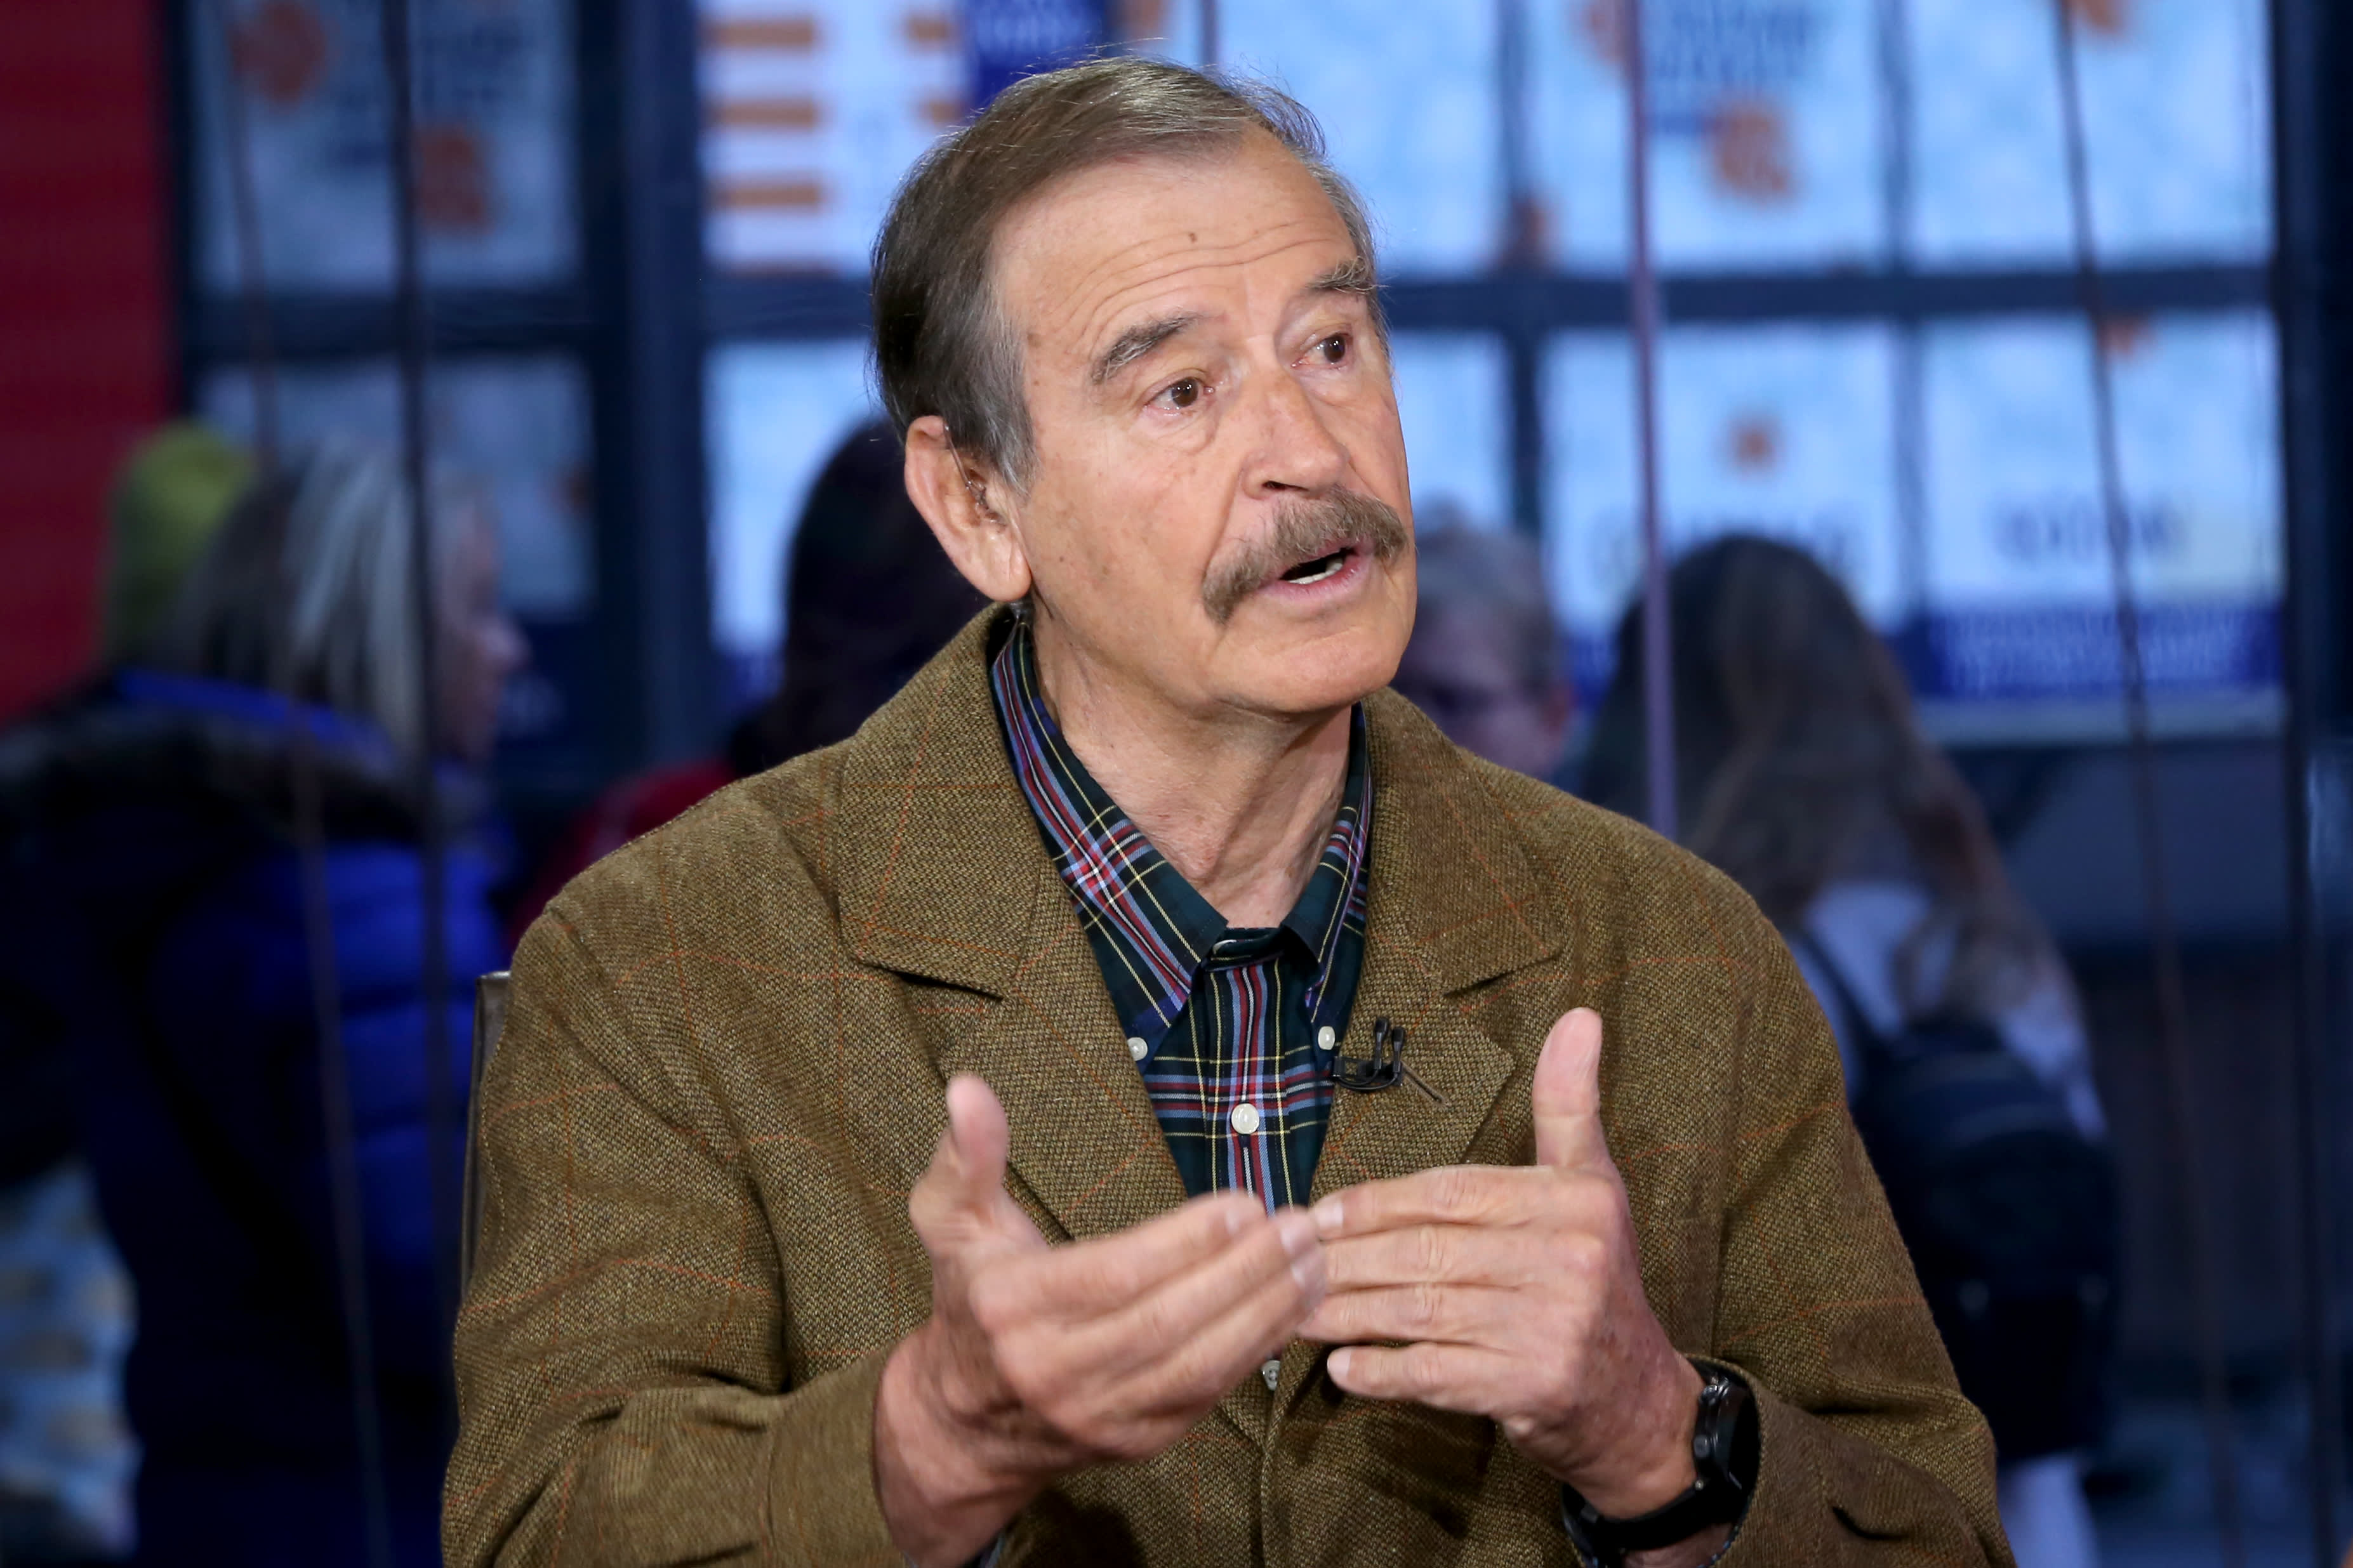 Legalization of drugs is the way to combat cartels, former Mexican president says